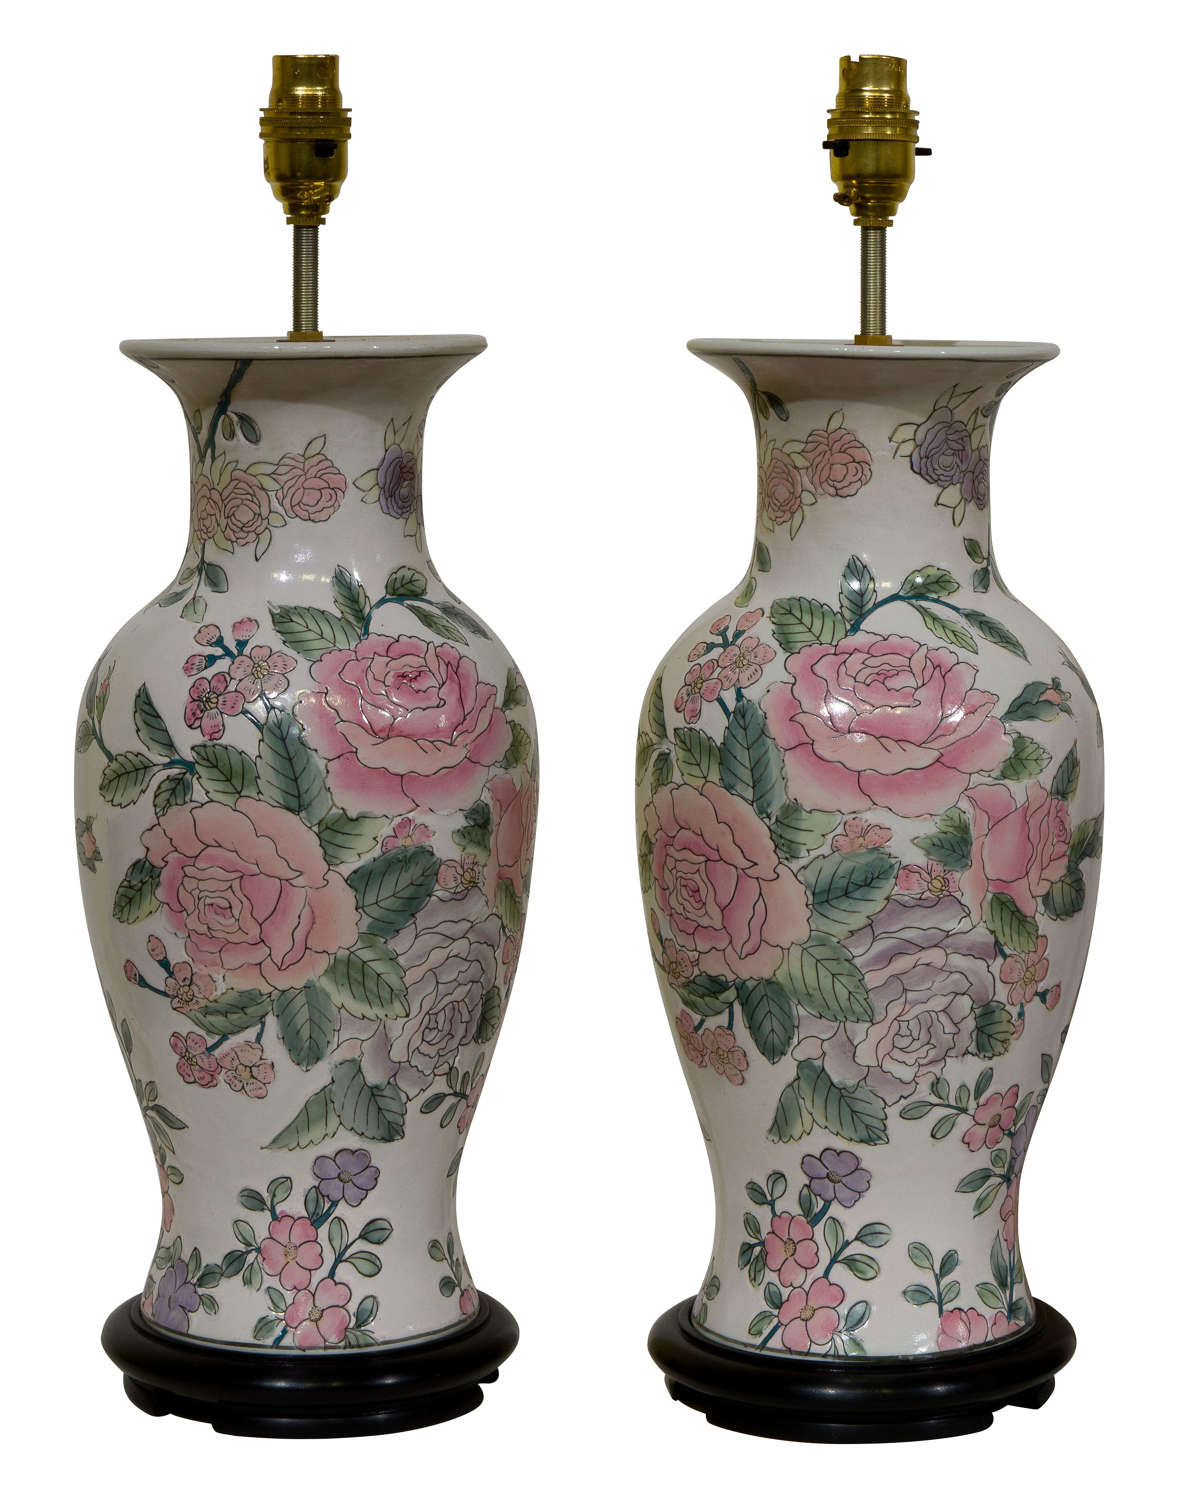 Pair of decorative Chinese Lamps